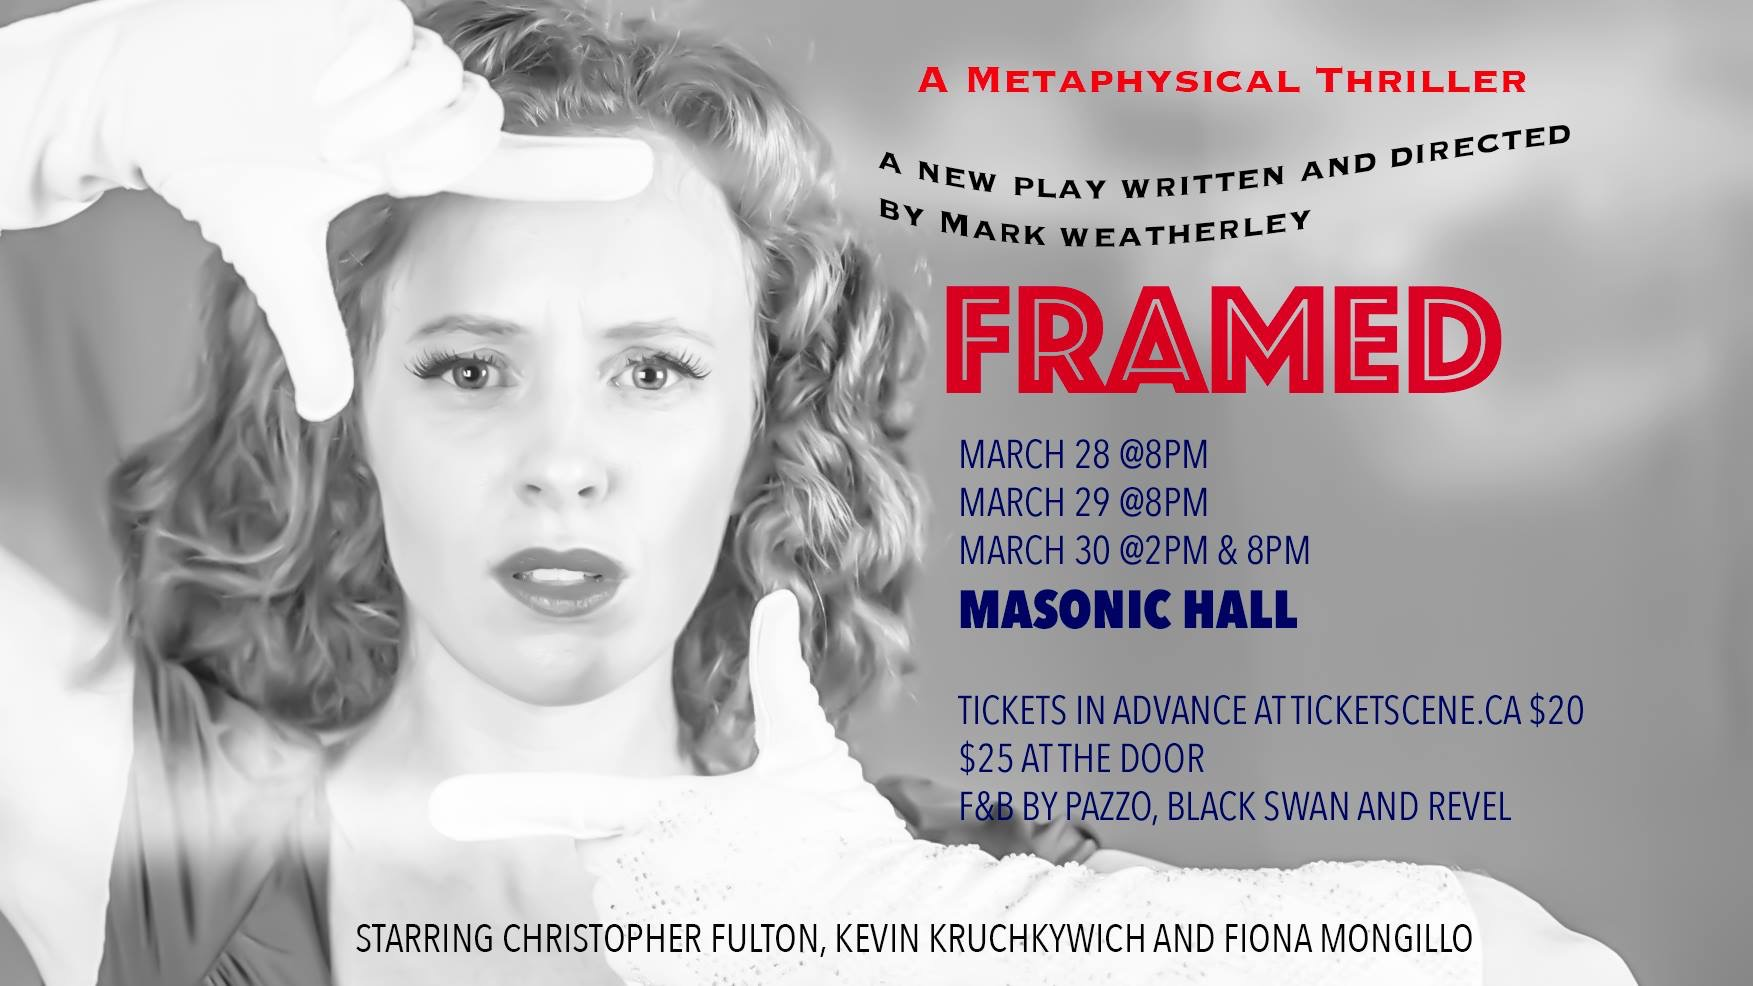 Framed: A Metaphysical Mystery Written and Directed by Mark Weatherley